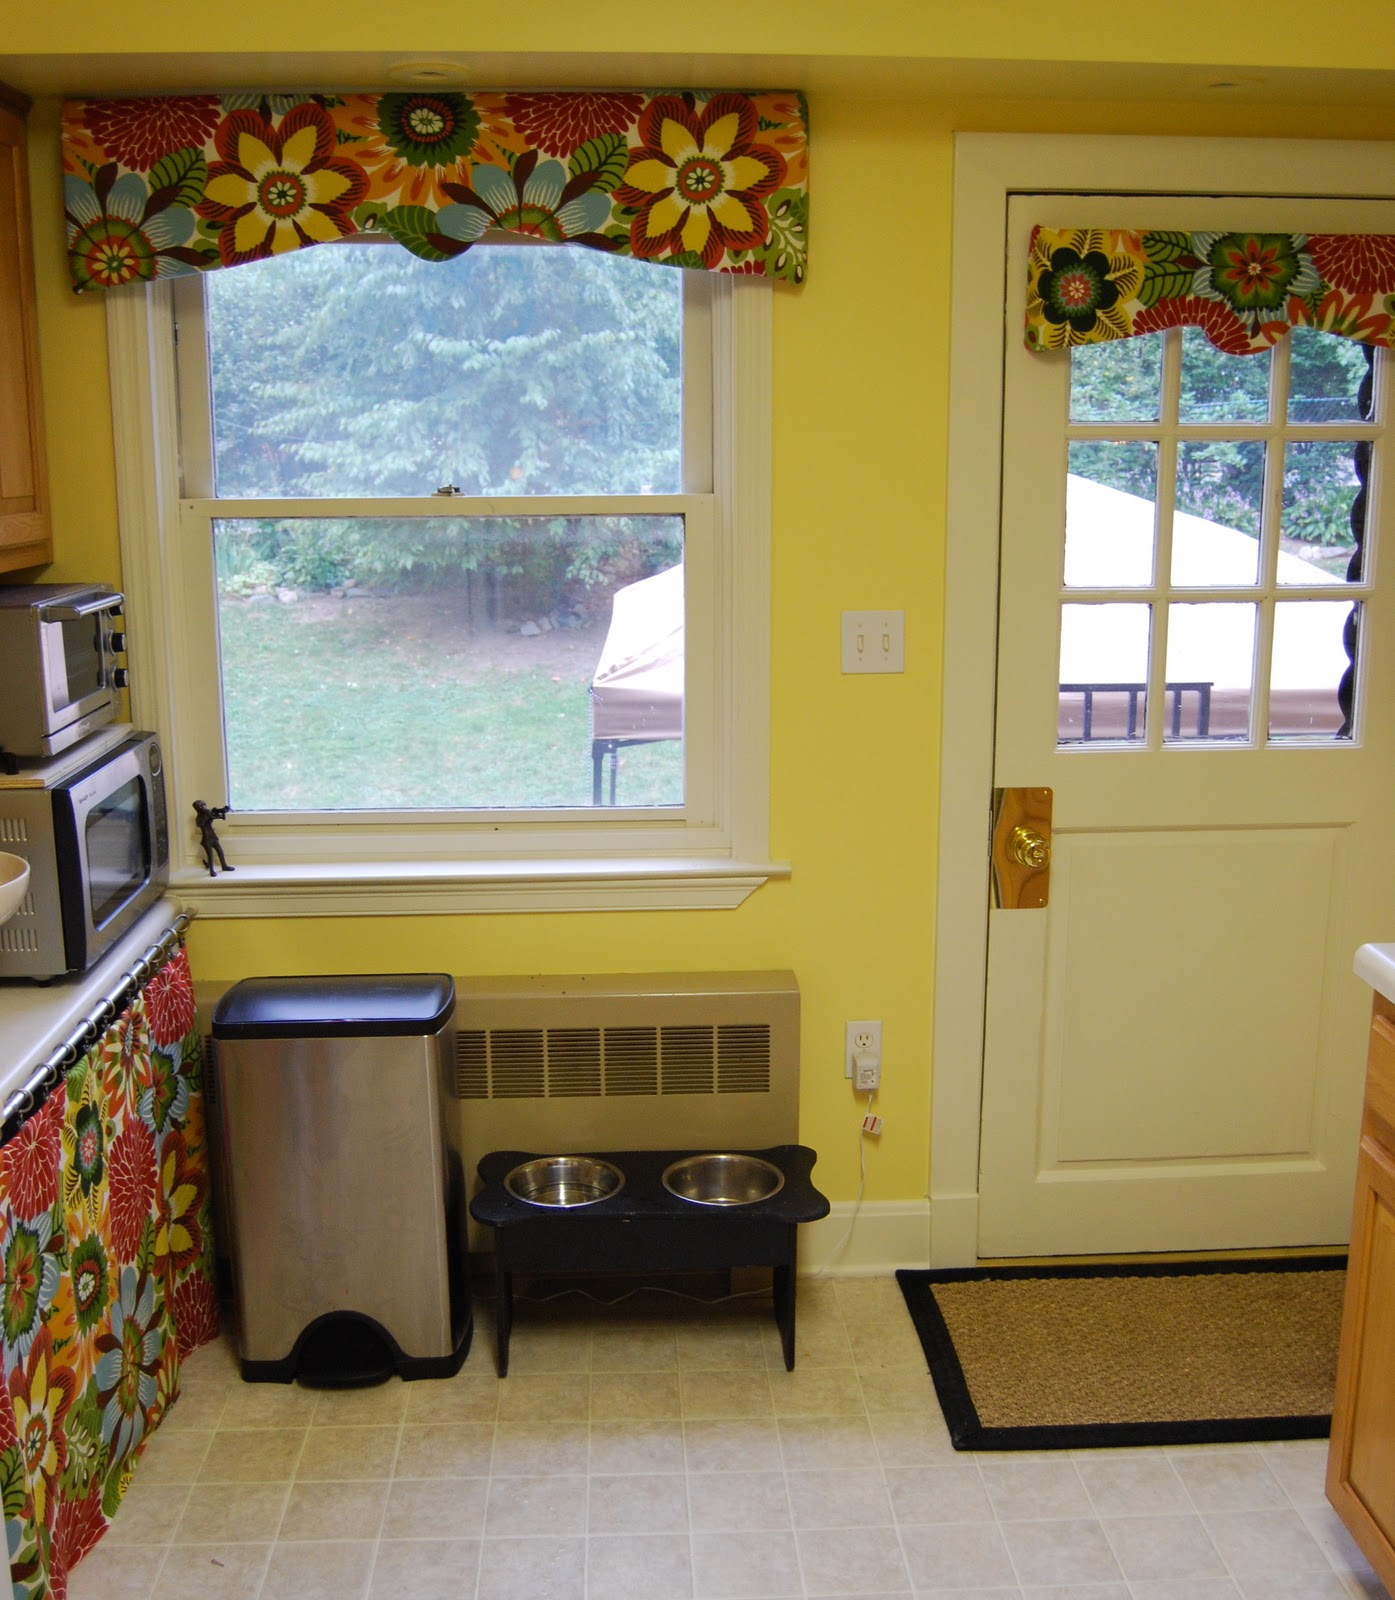 Kitchen Curtain Pelmets: When I Grow Up...: Pelmet Boxes